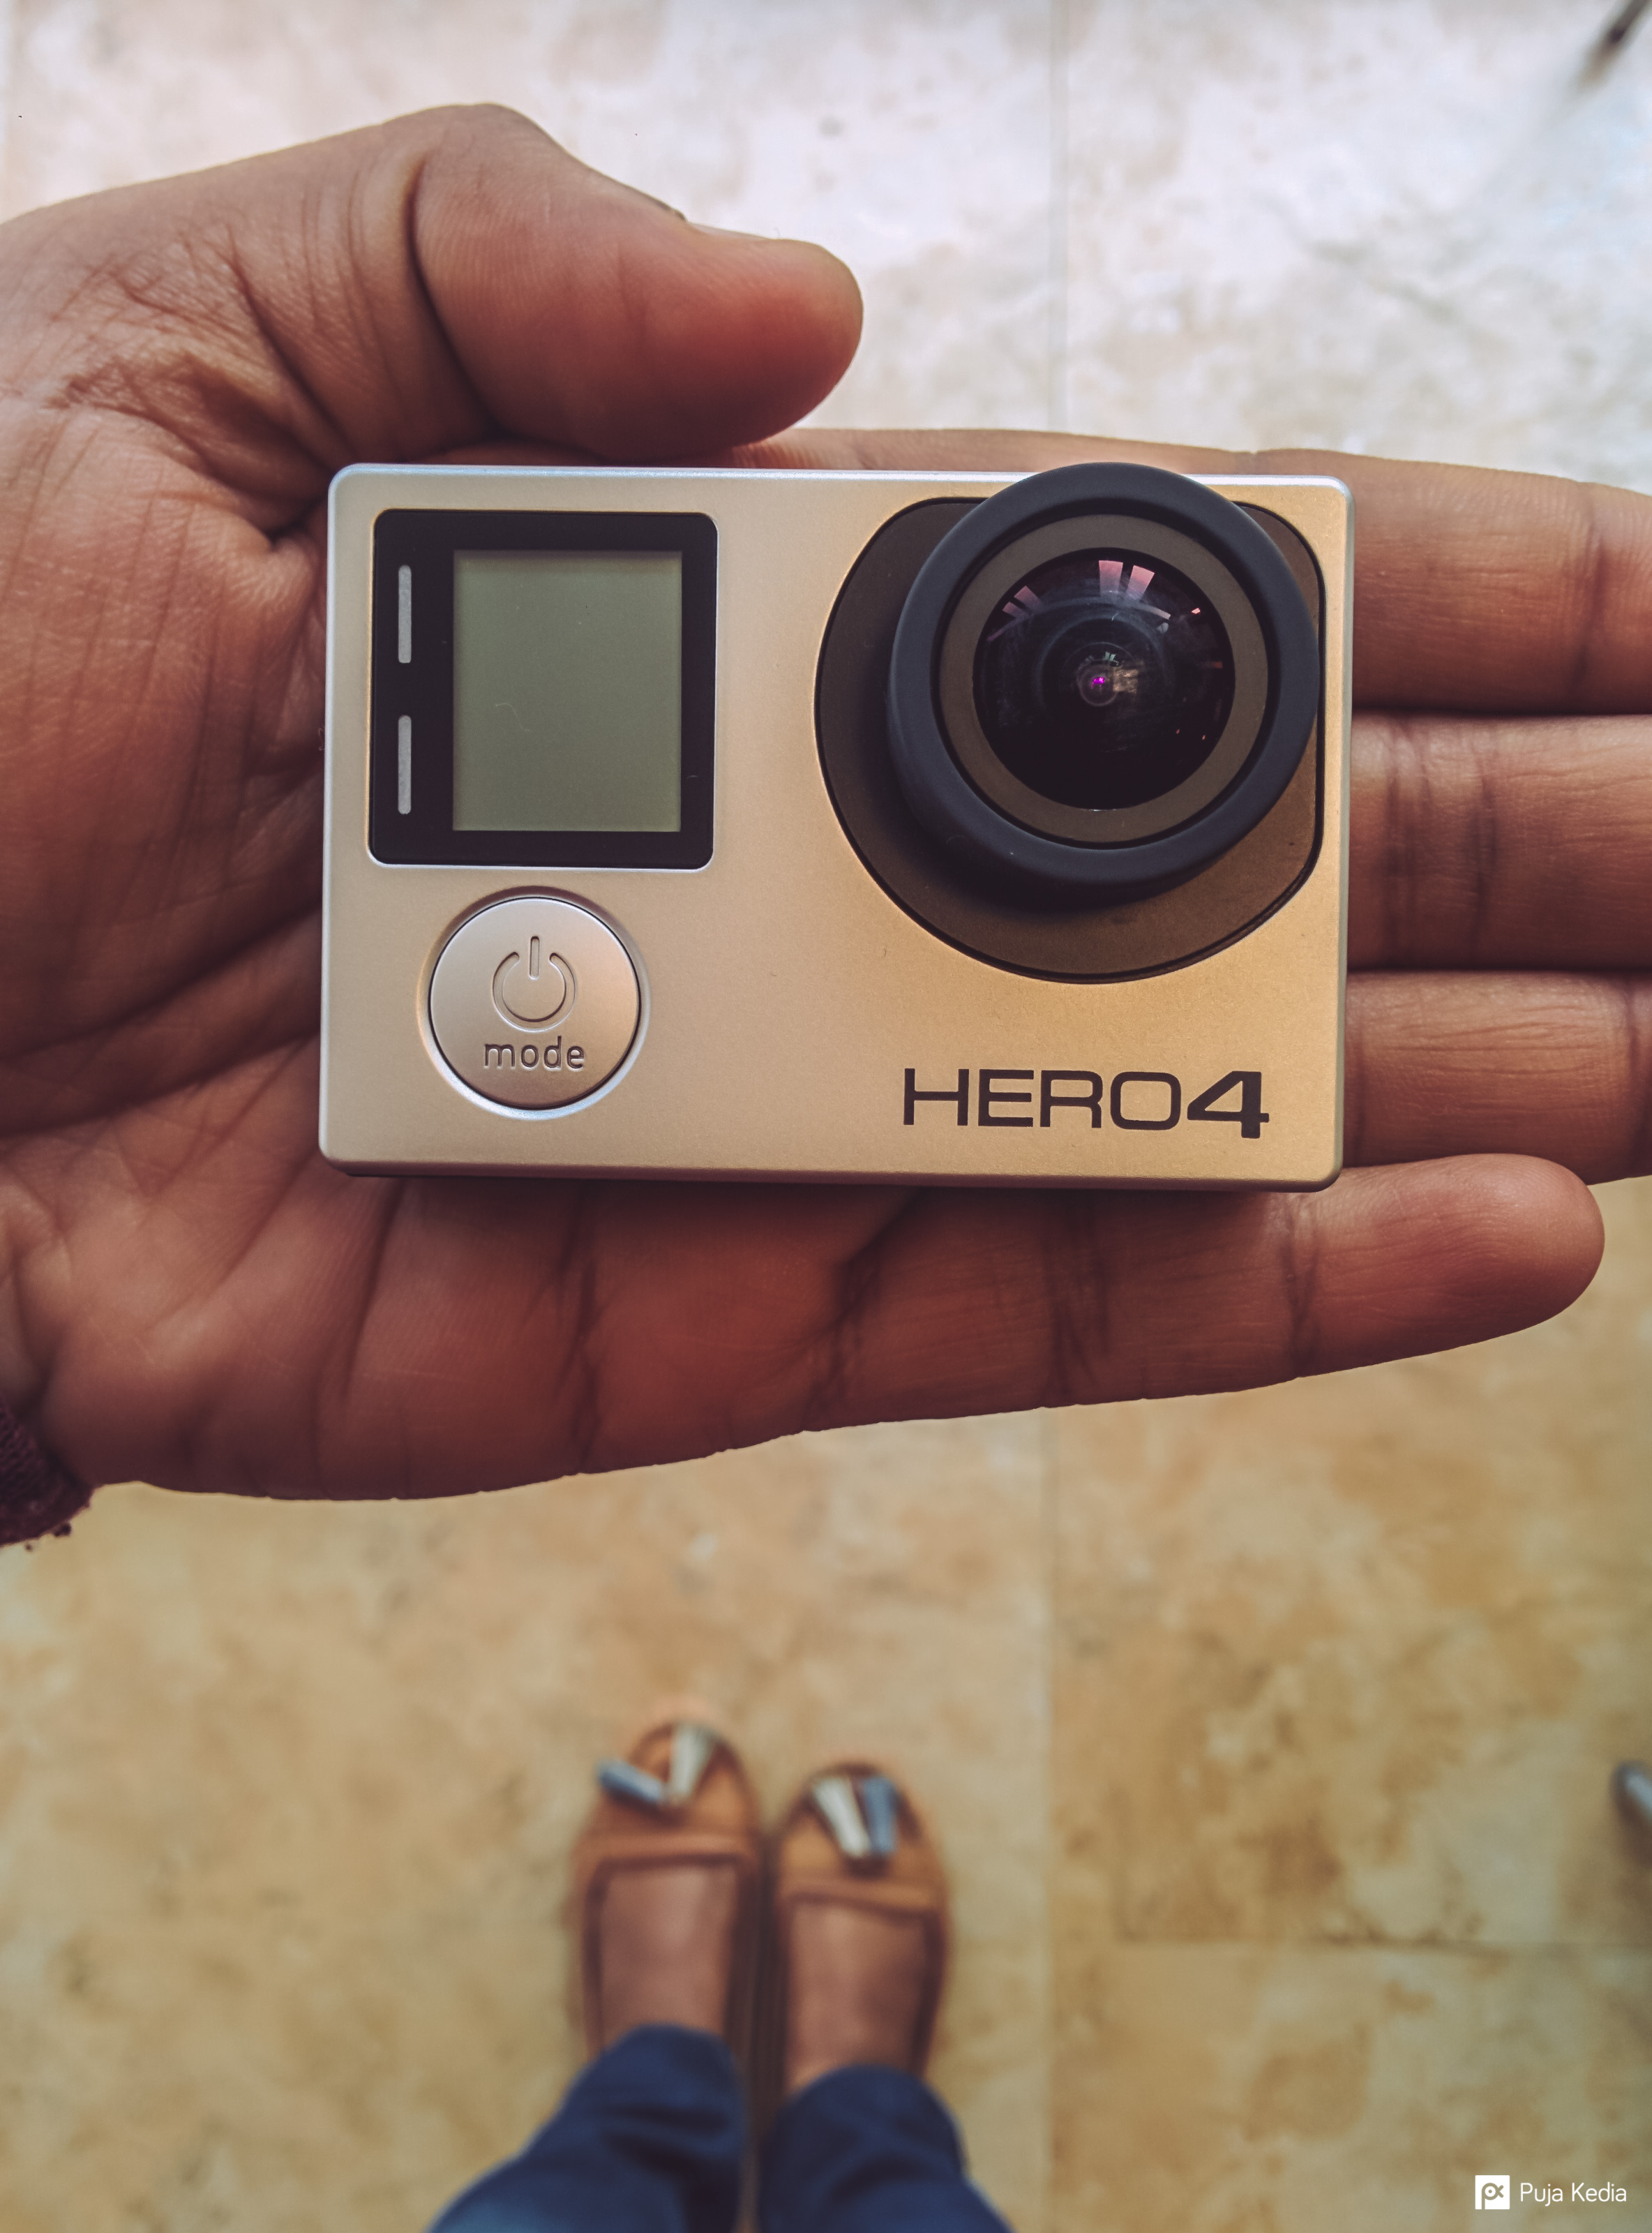 The Shiny new GoPro!